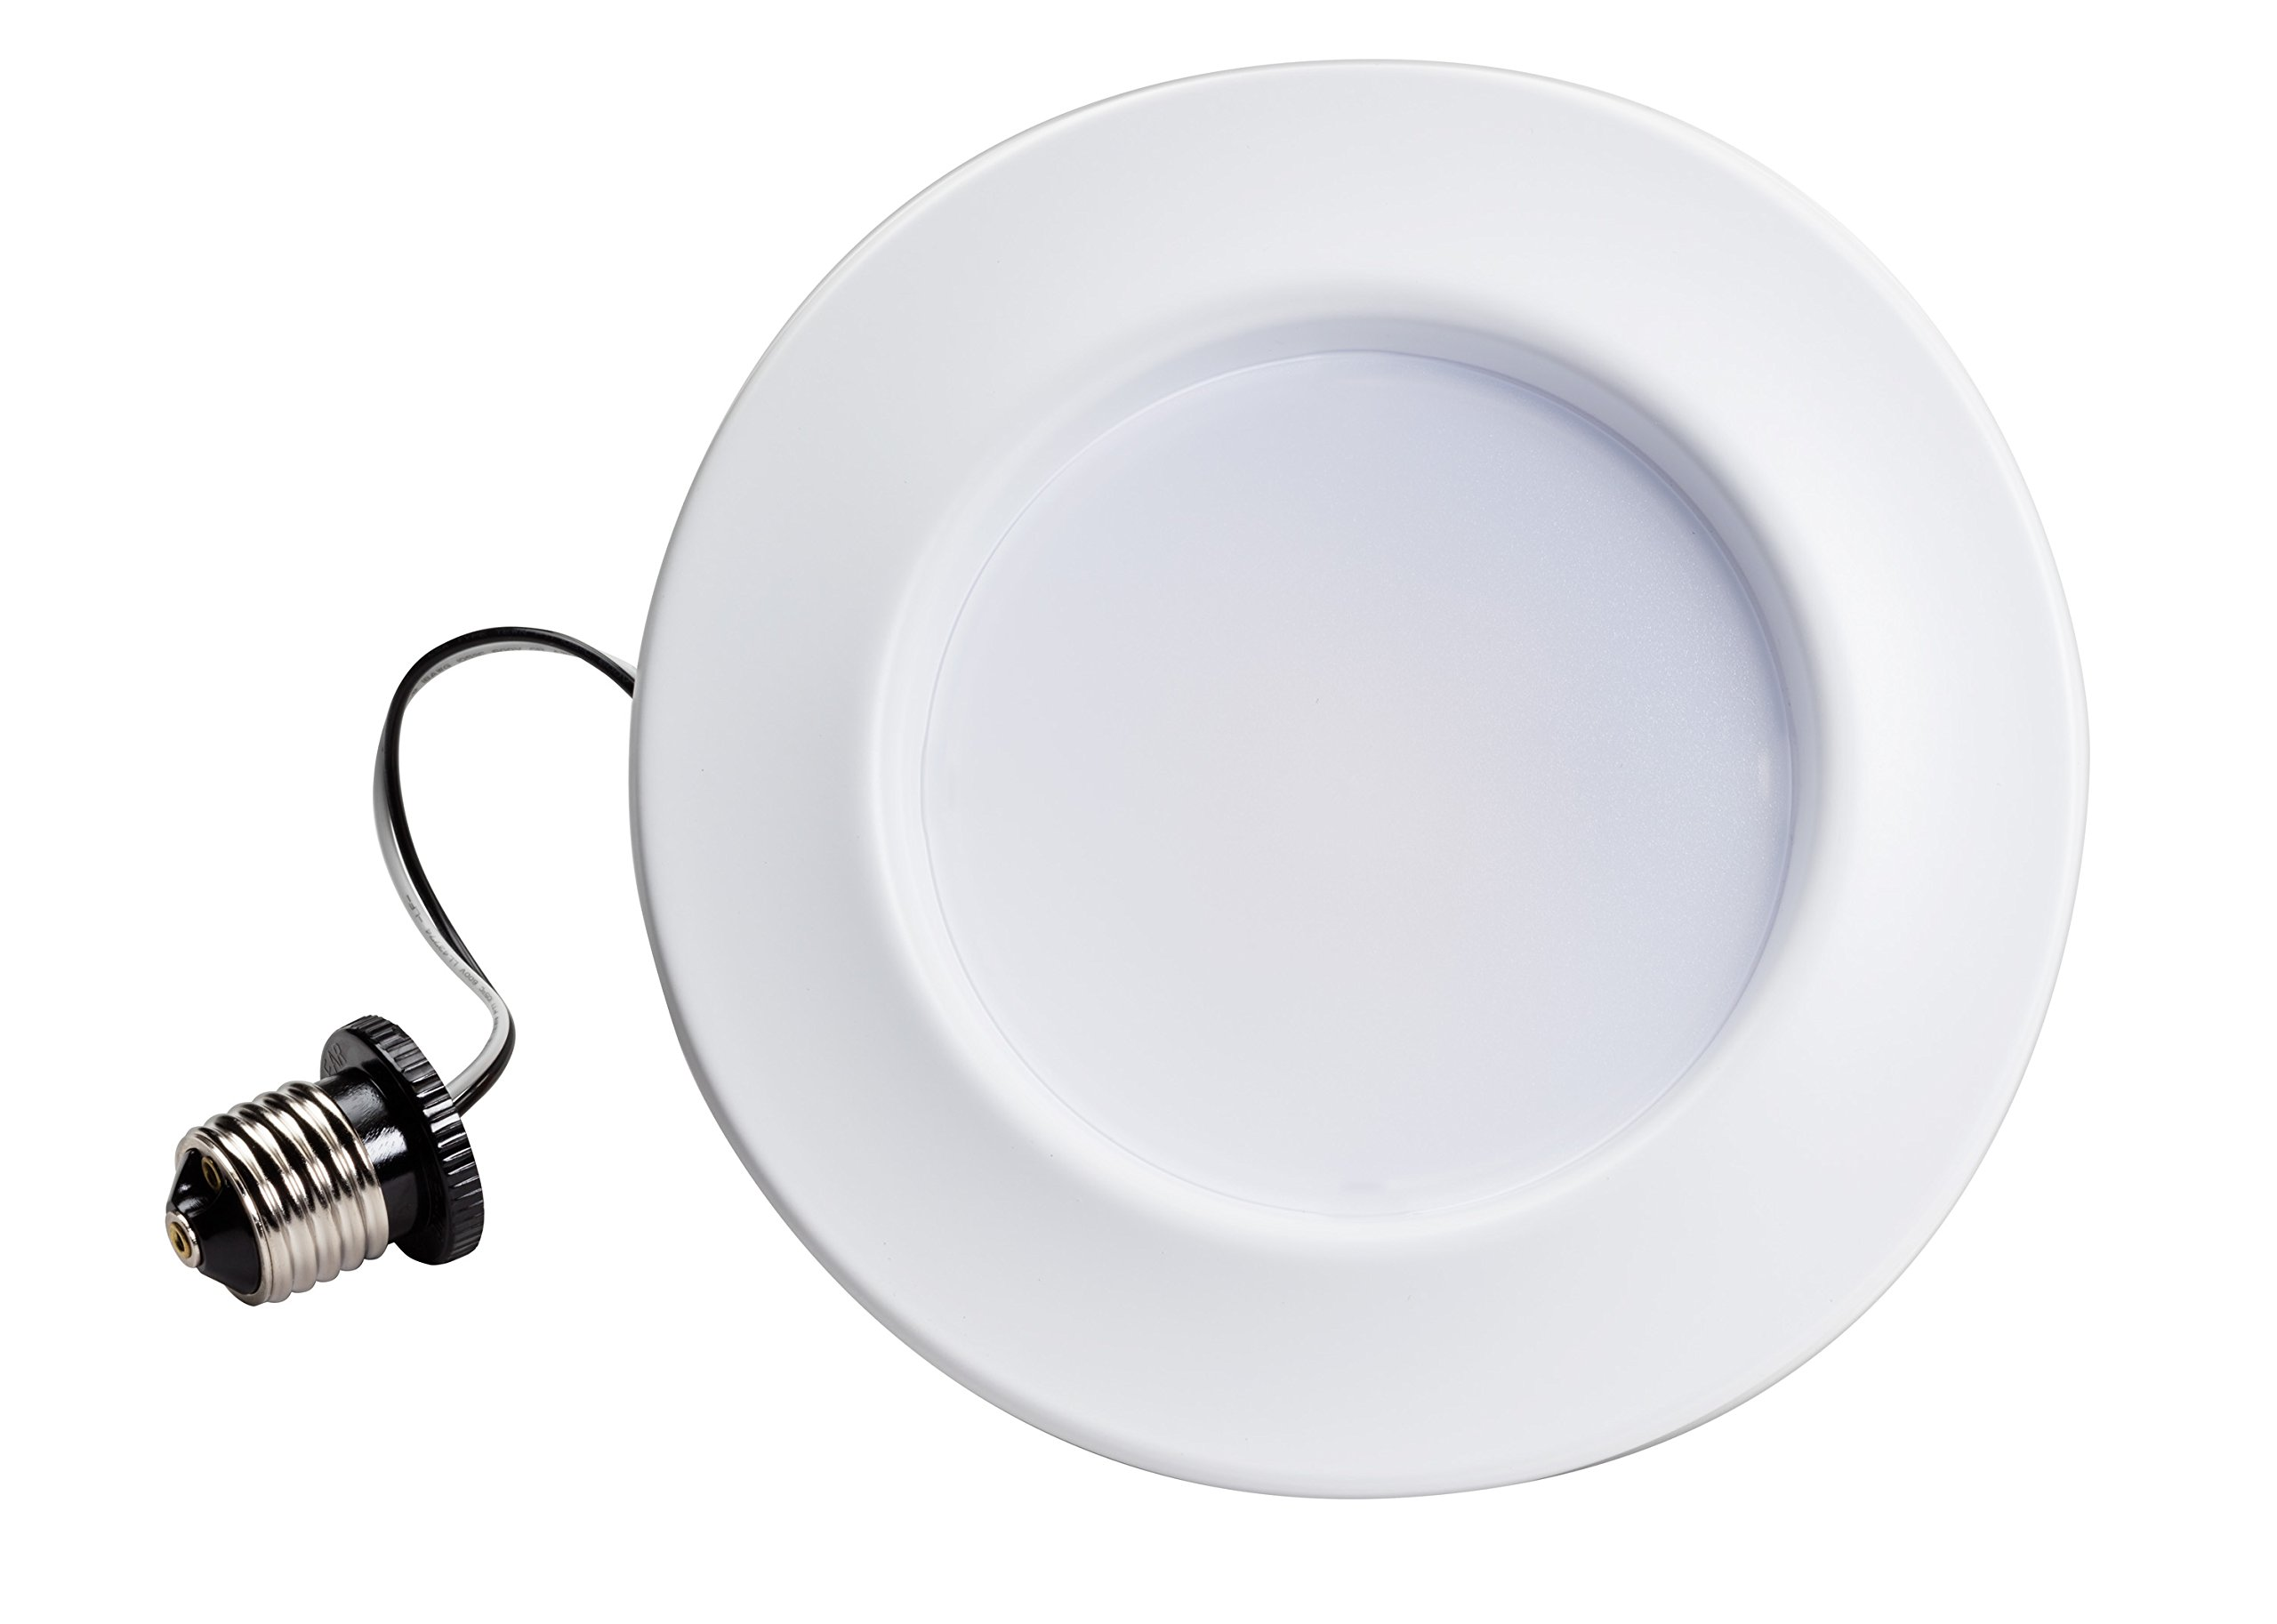 Philips 801274 65W Equivalent Dimmable Daylight LED Downlight, 5-6''